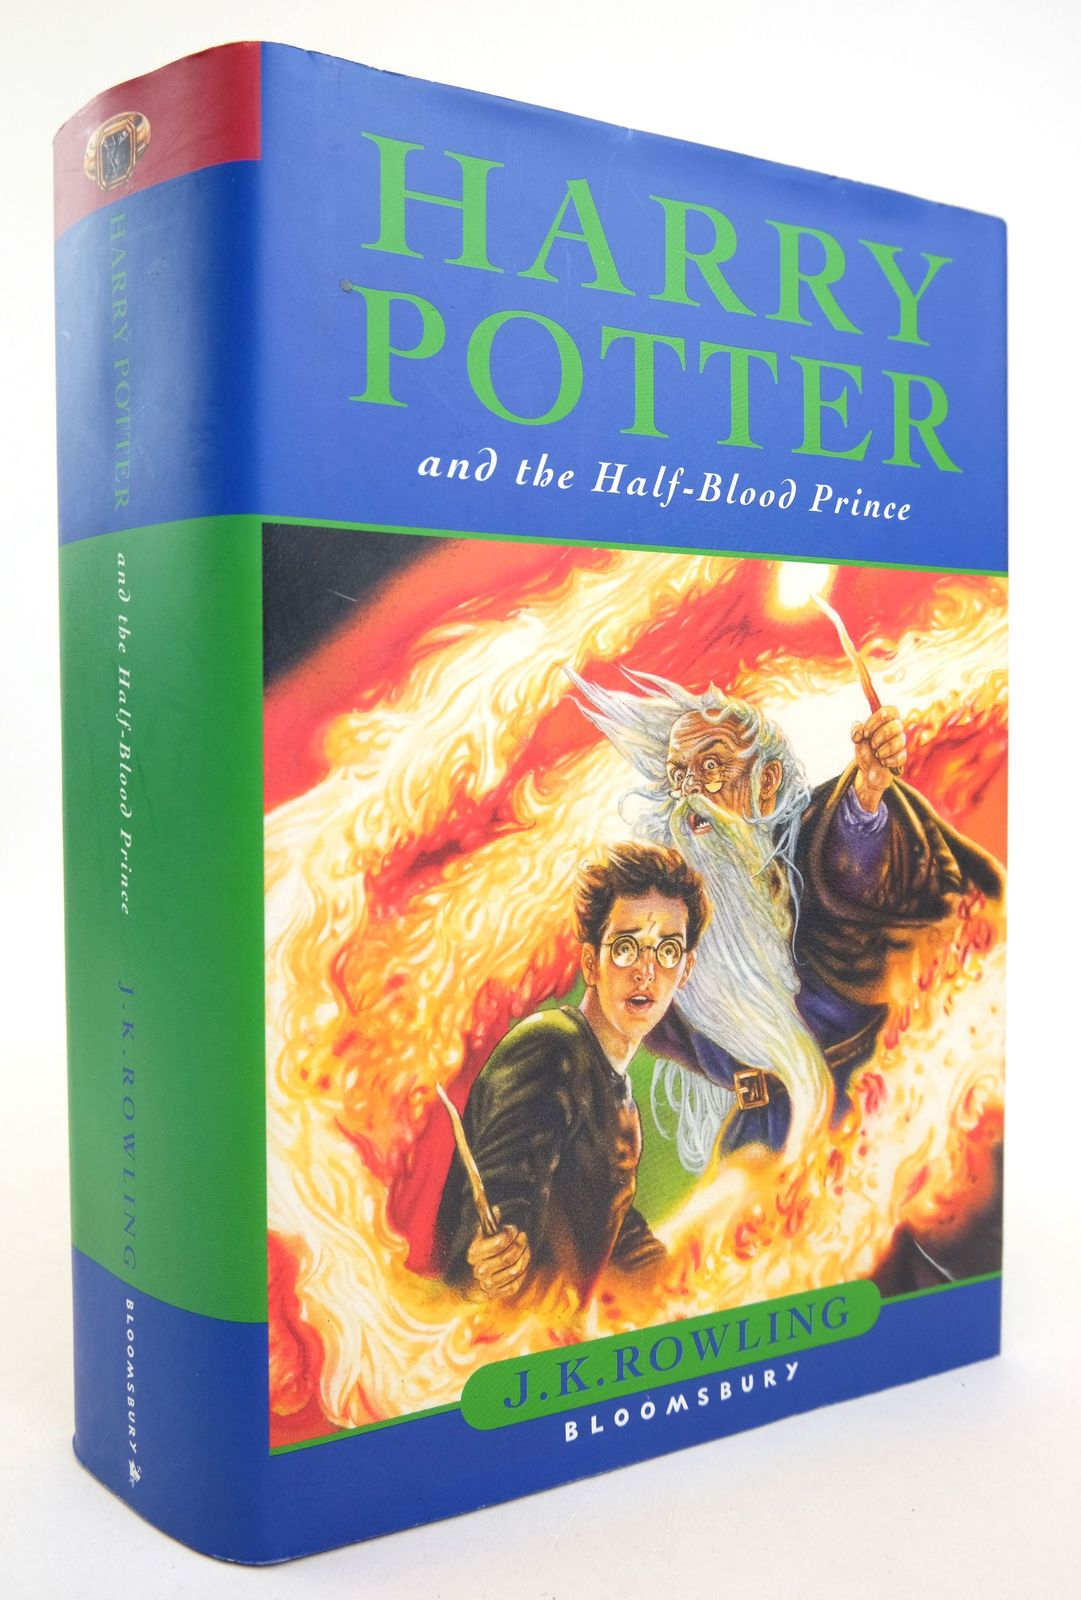 Photo of HARRY POTTER AND THE HALF-BLOOD PRINCE written by Rowling, J.K. published by Bloomsbury (STOCK CODE: 1819179)  for sale by Stella & Rose's Books